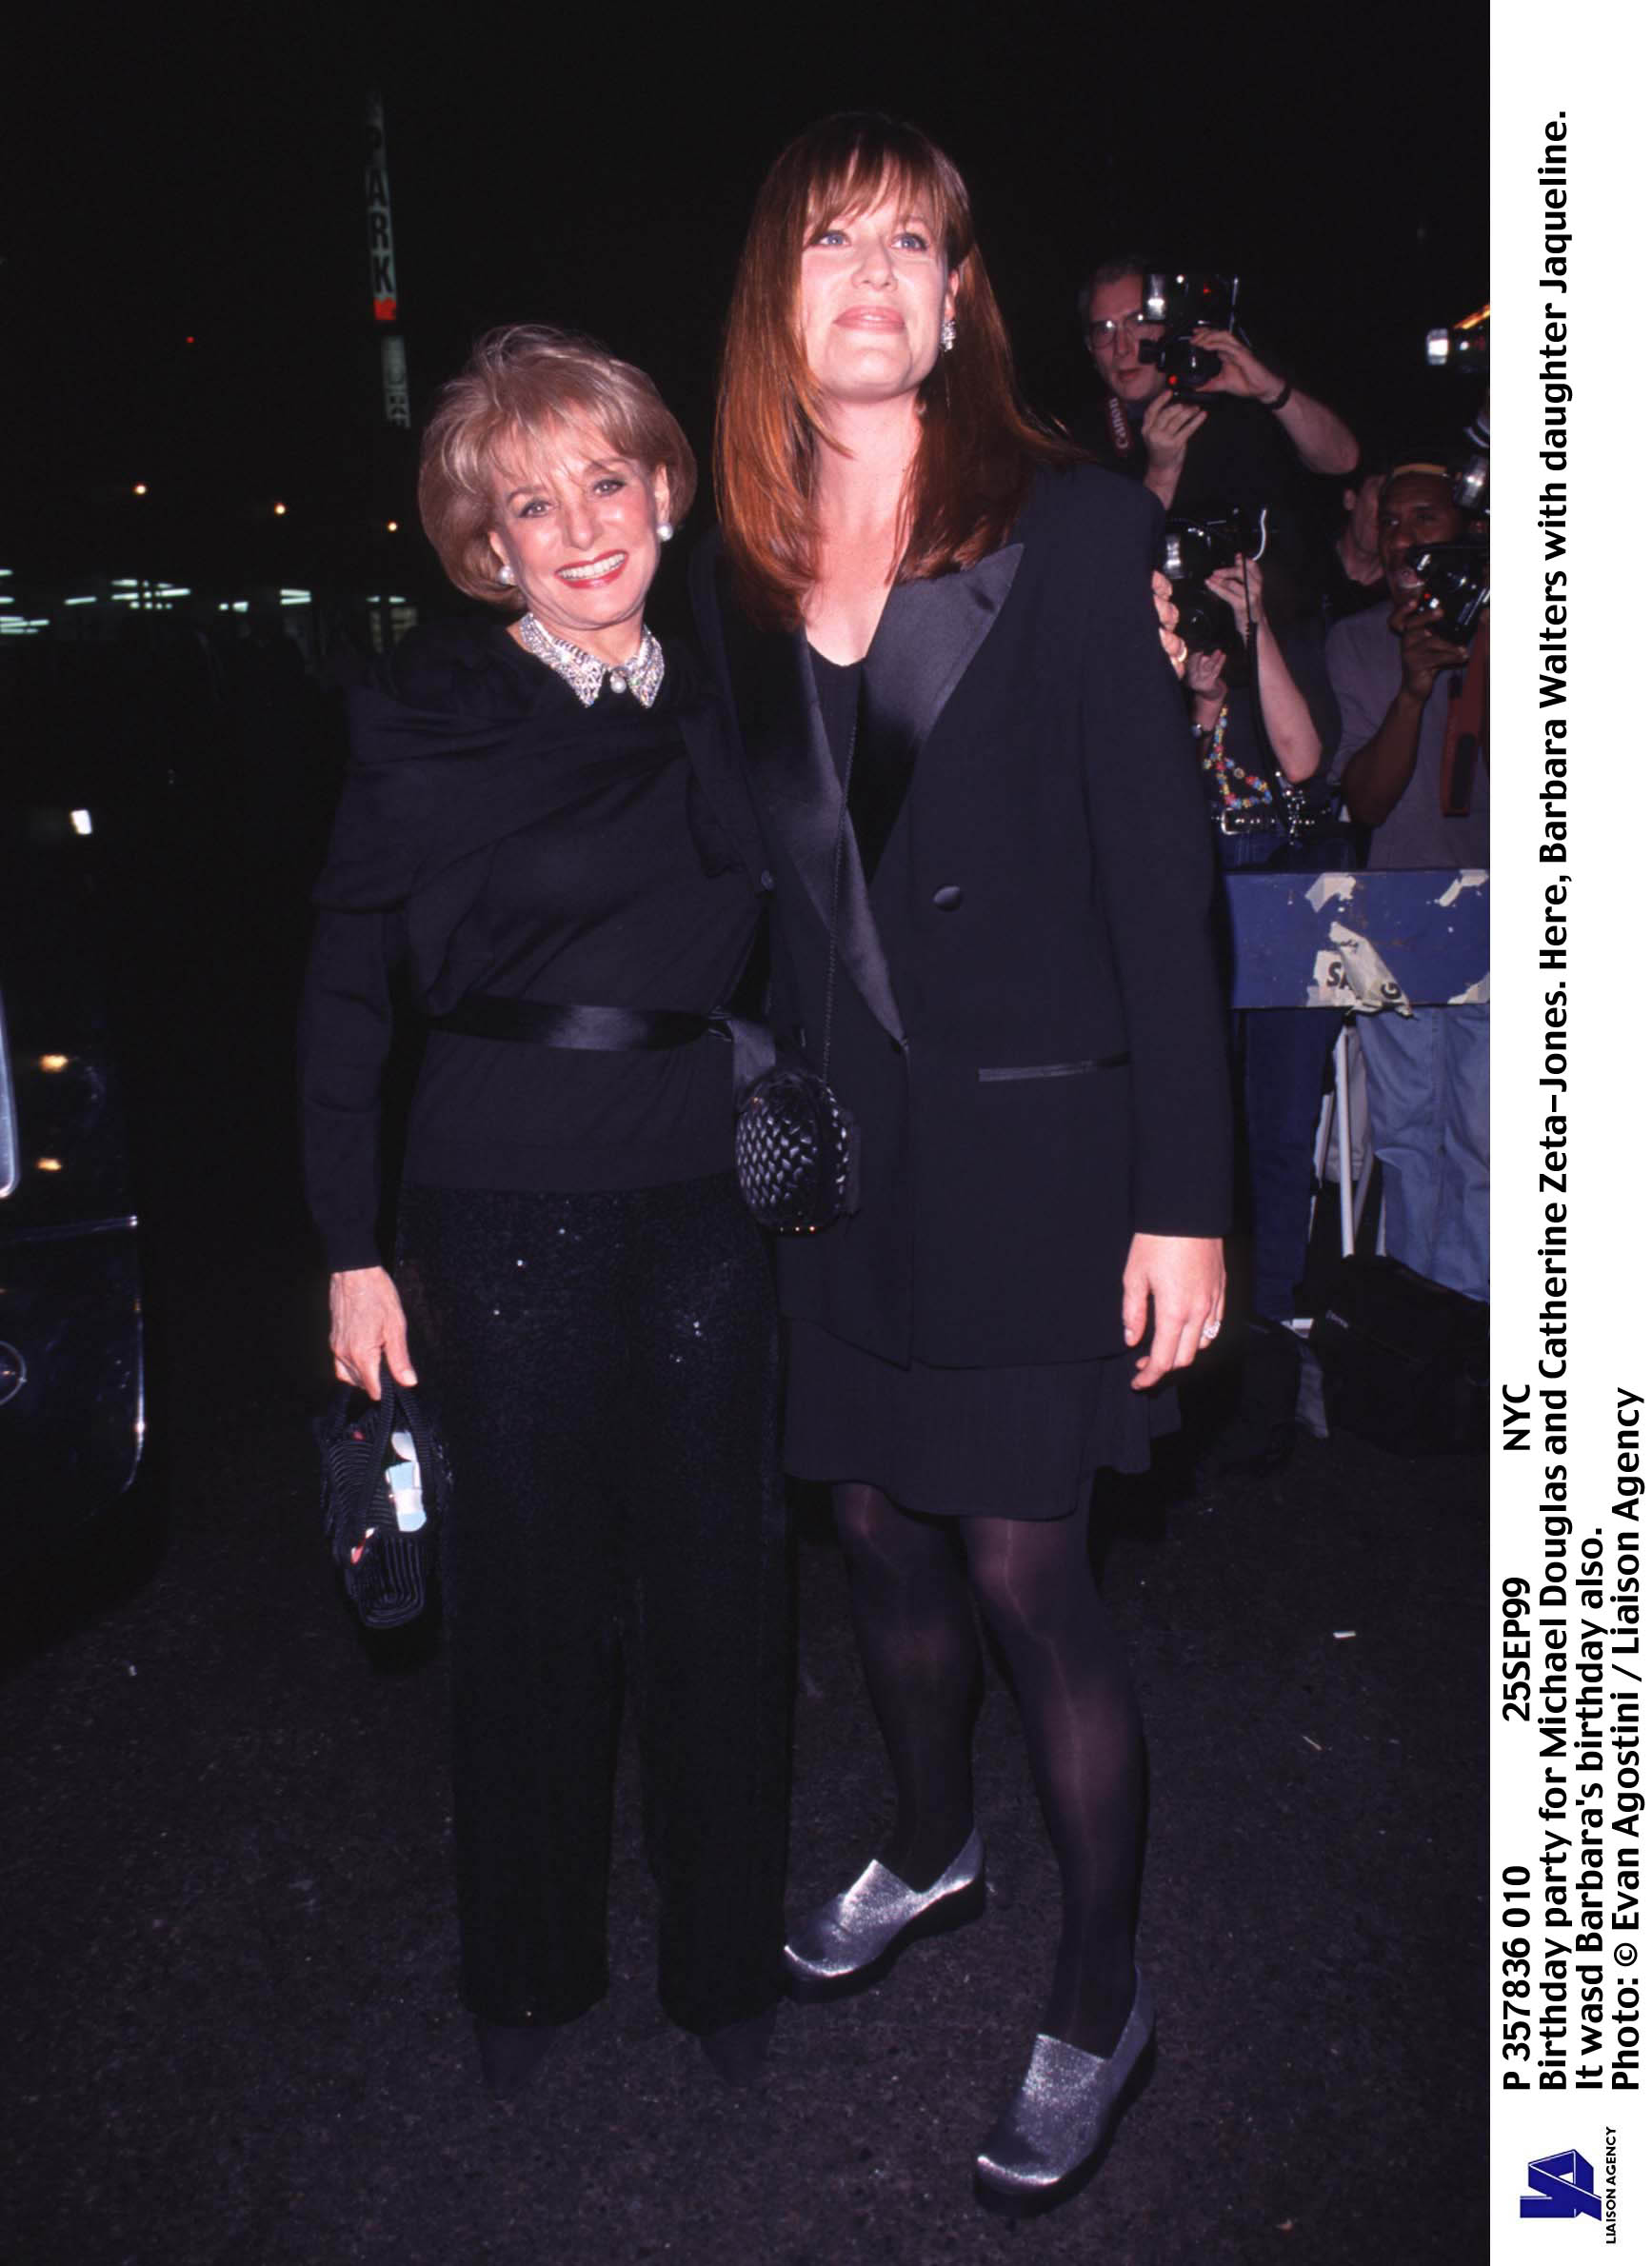 Barbara Walters and daughter, Jaqueline Guber. 1999. Image Credit: Getty Images